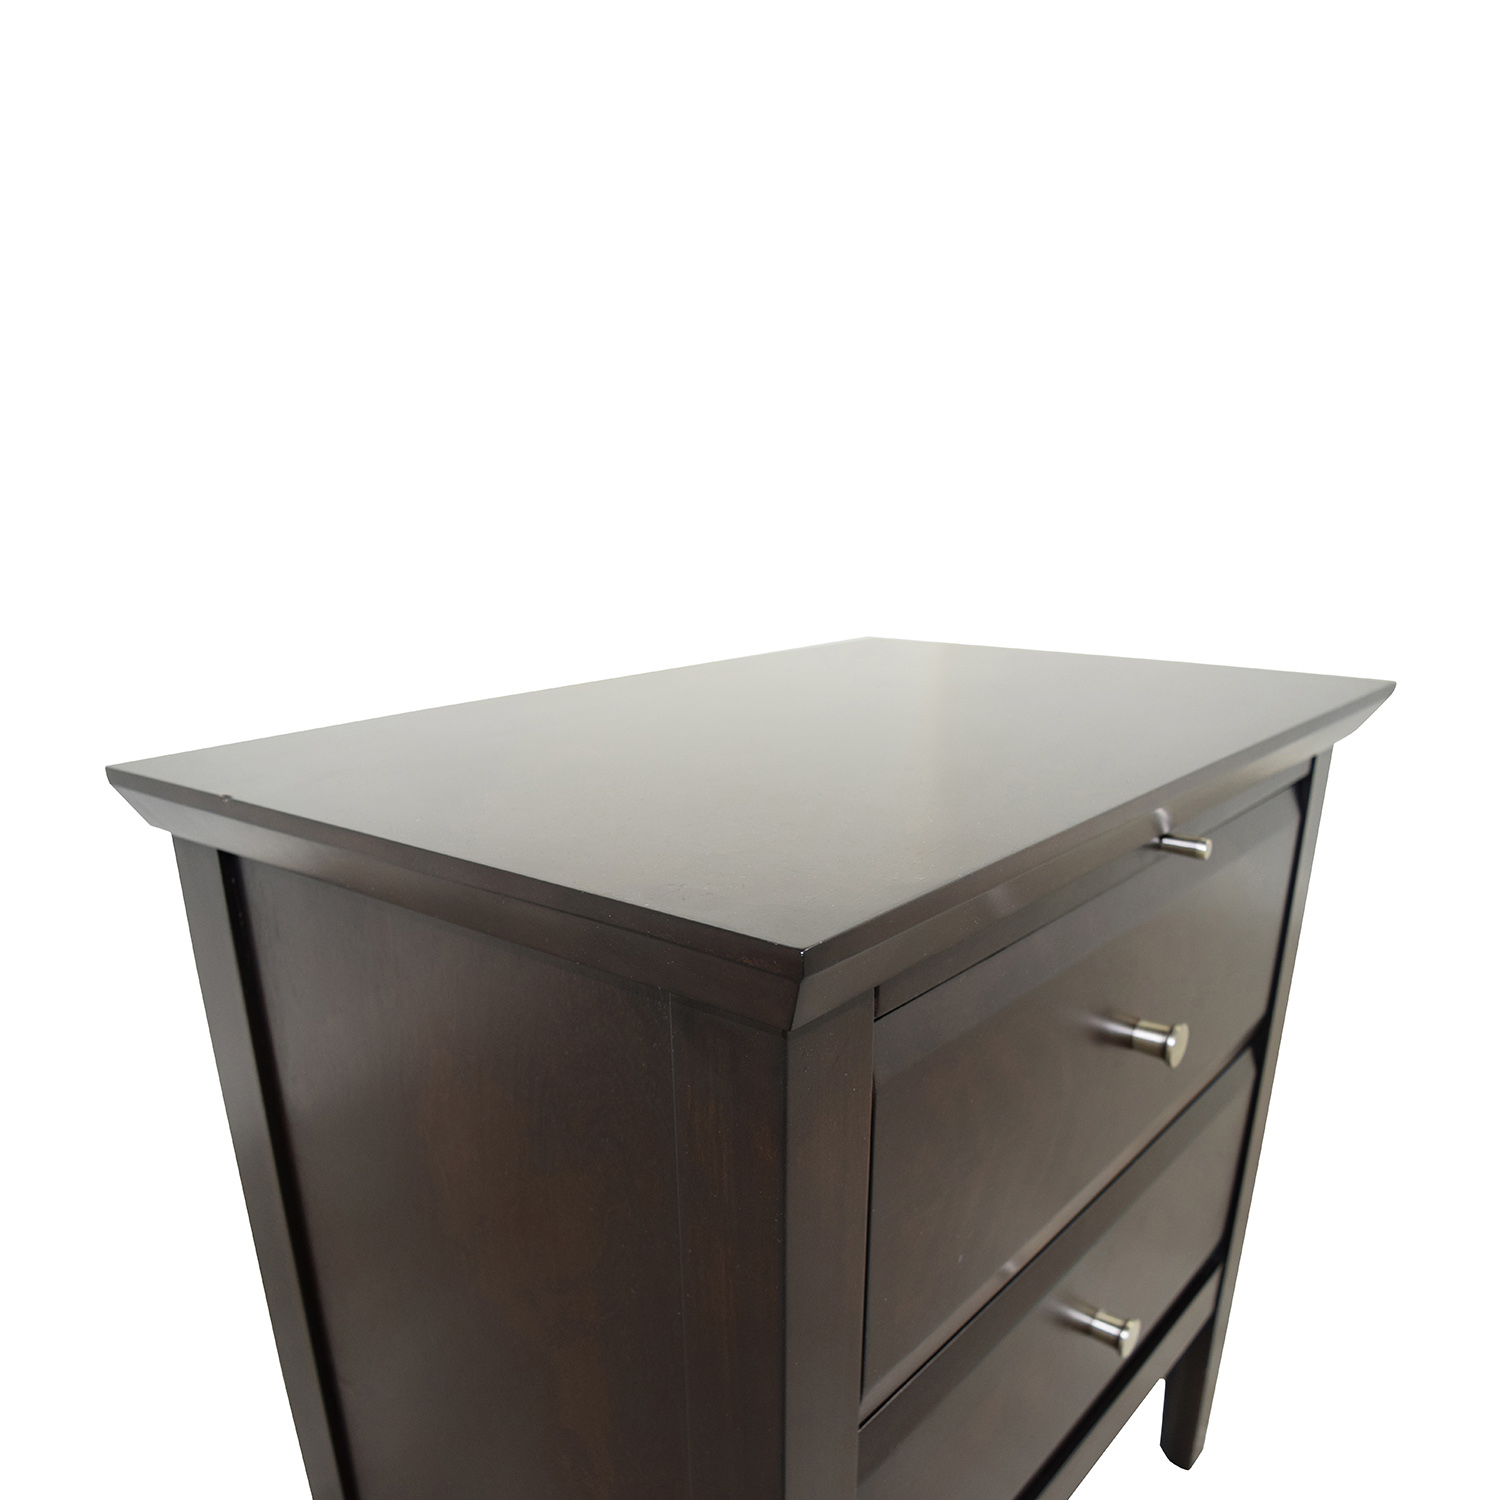 Macys Sell: Macy's Macy's Two-Drawer Nightstand / Tables